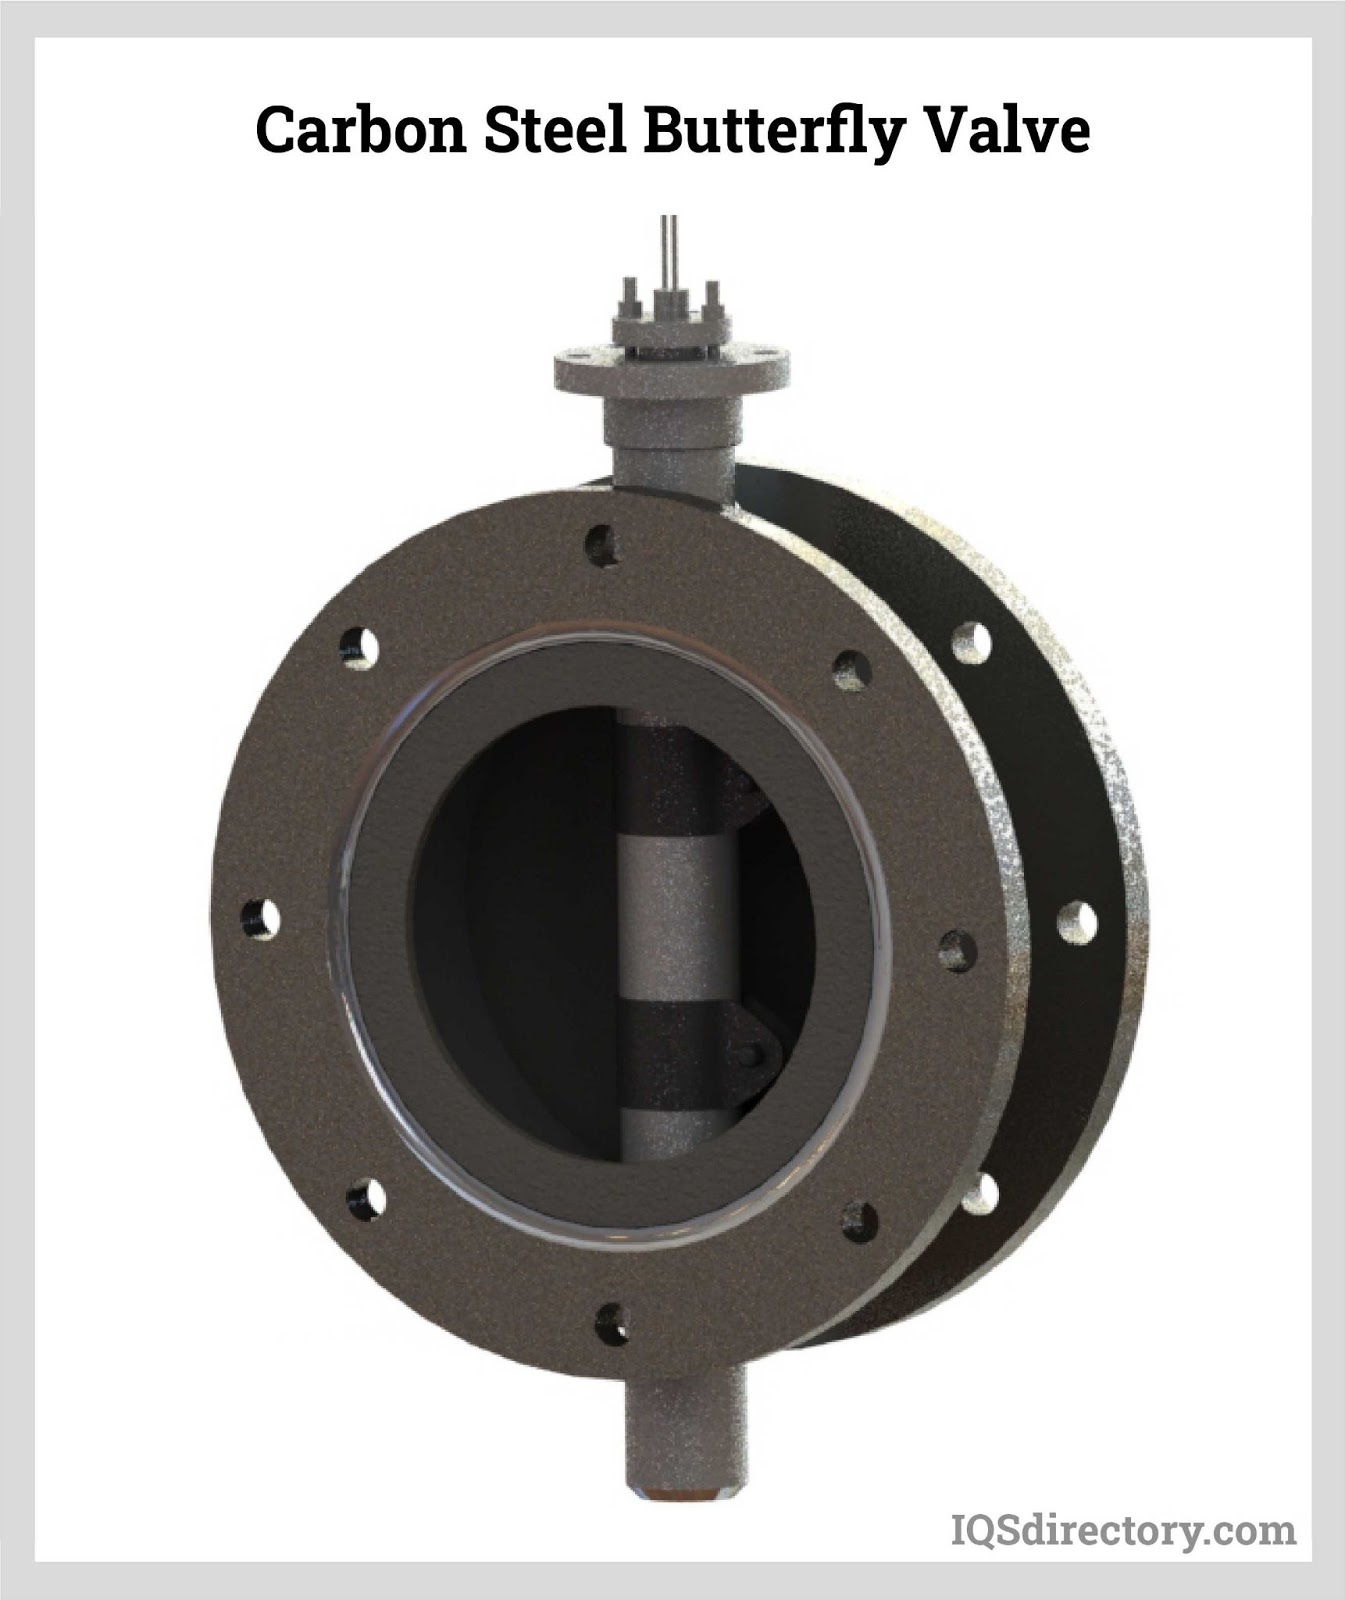 Carbon Steel Butterfly Valve